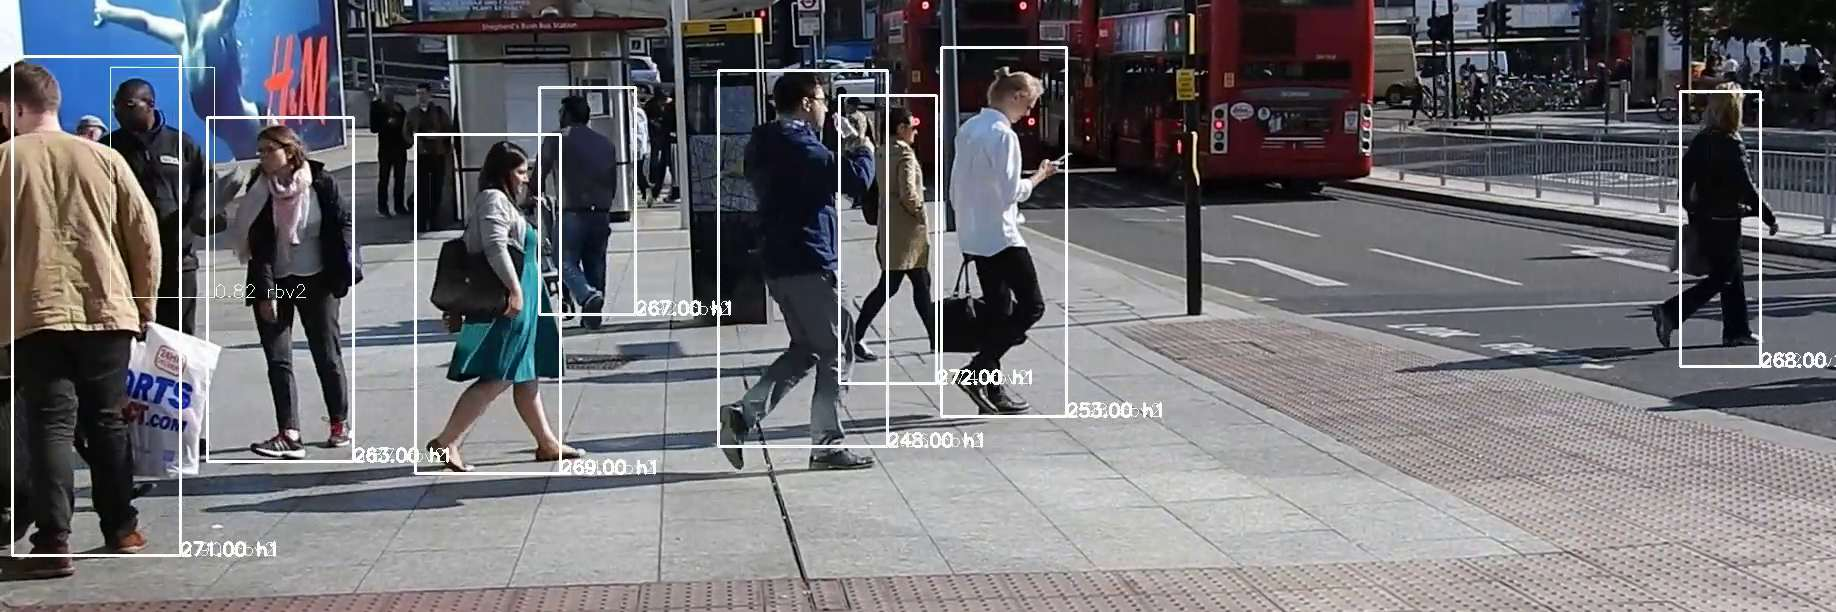 Counting pedestrians from video